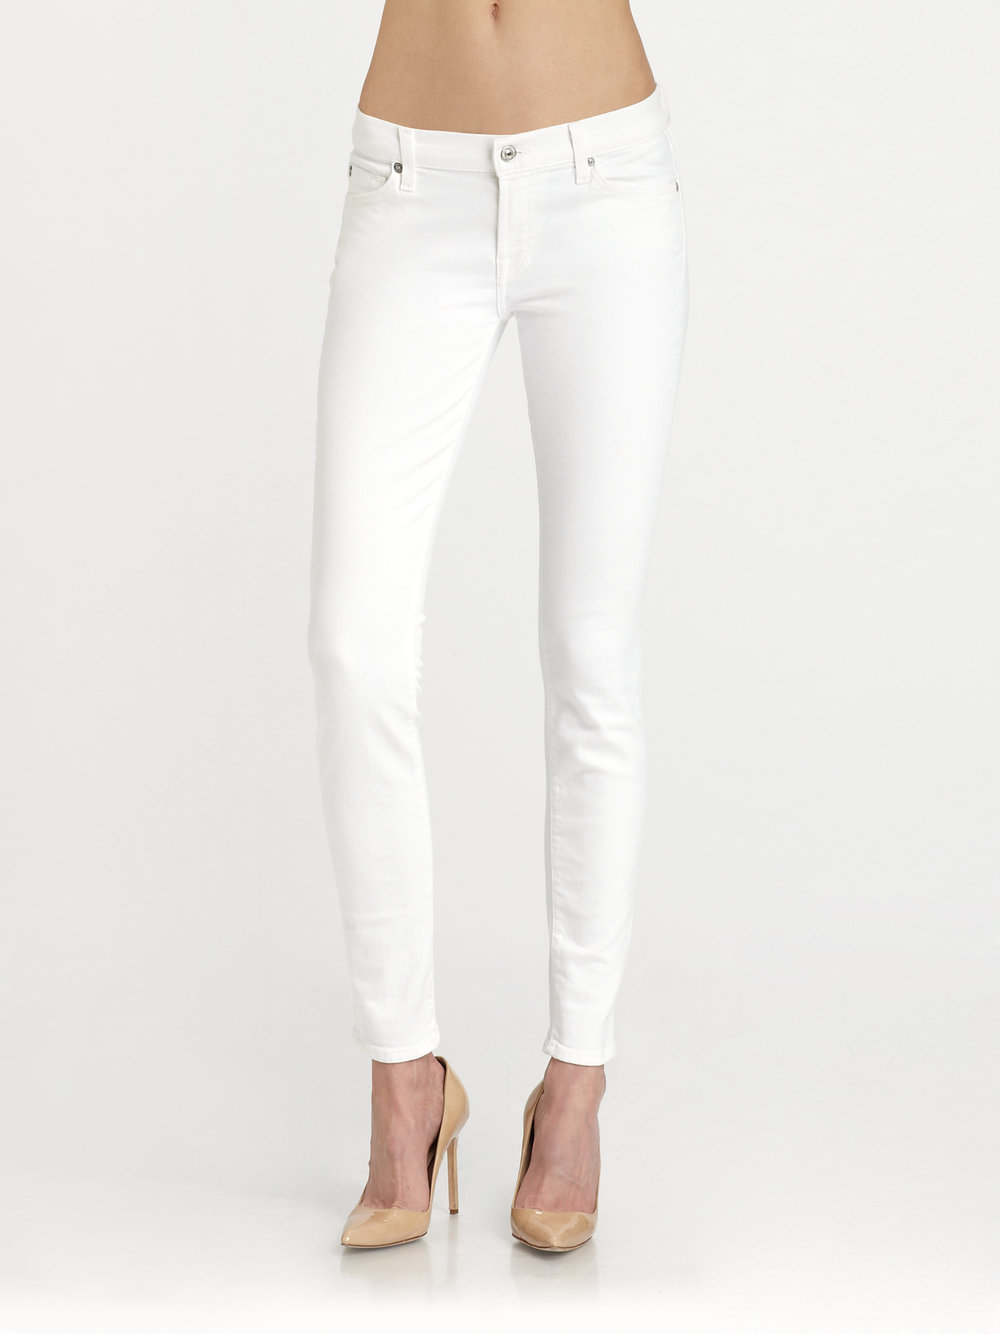 Seven for All Mankind Skinny Slim Illusion in White £180.00 ( Click to Buy )